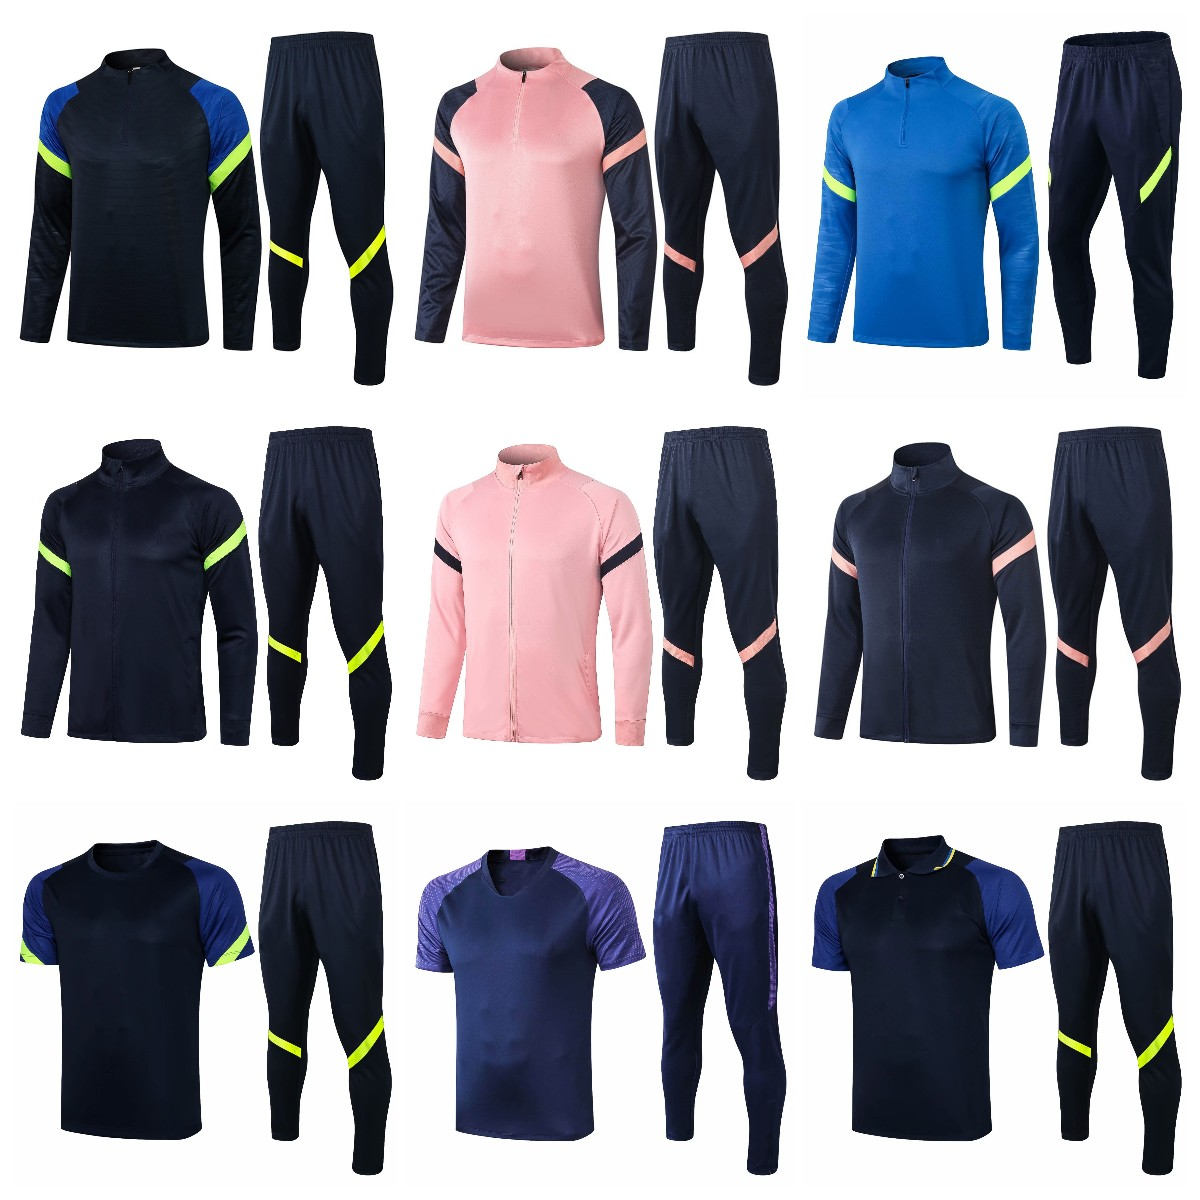 21 22 Kane tracksuits TOT mens jacket Bale Tottenham training wear suits hoodie soccer jersey sportwear Son football pre match polo shirt track suit tshirts